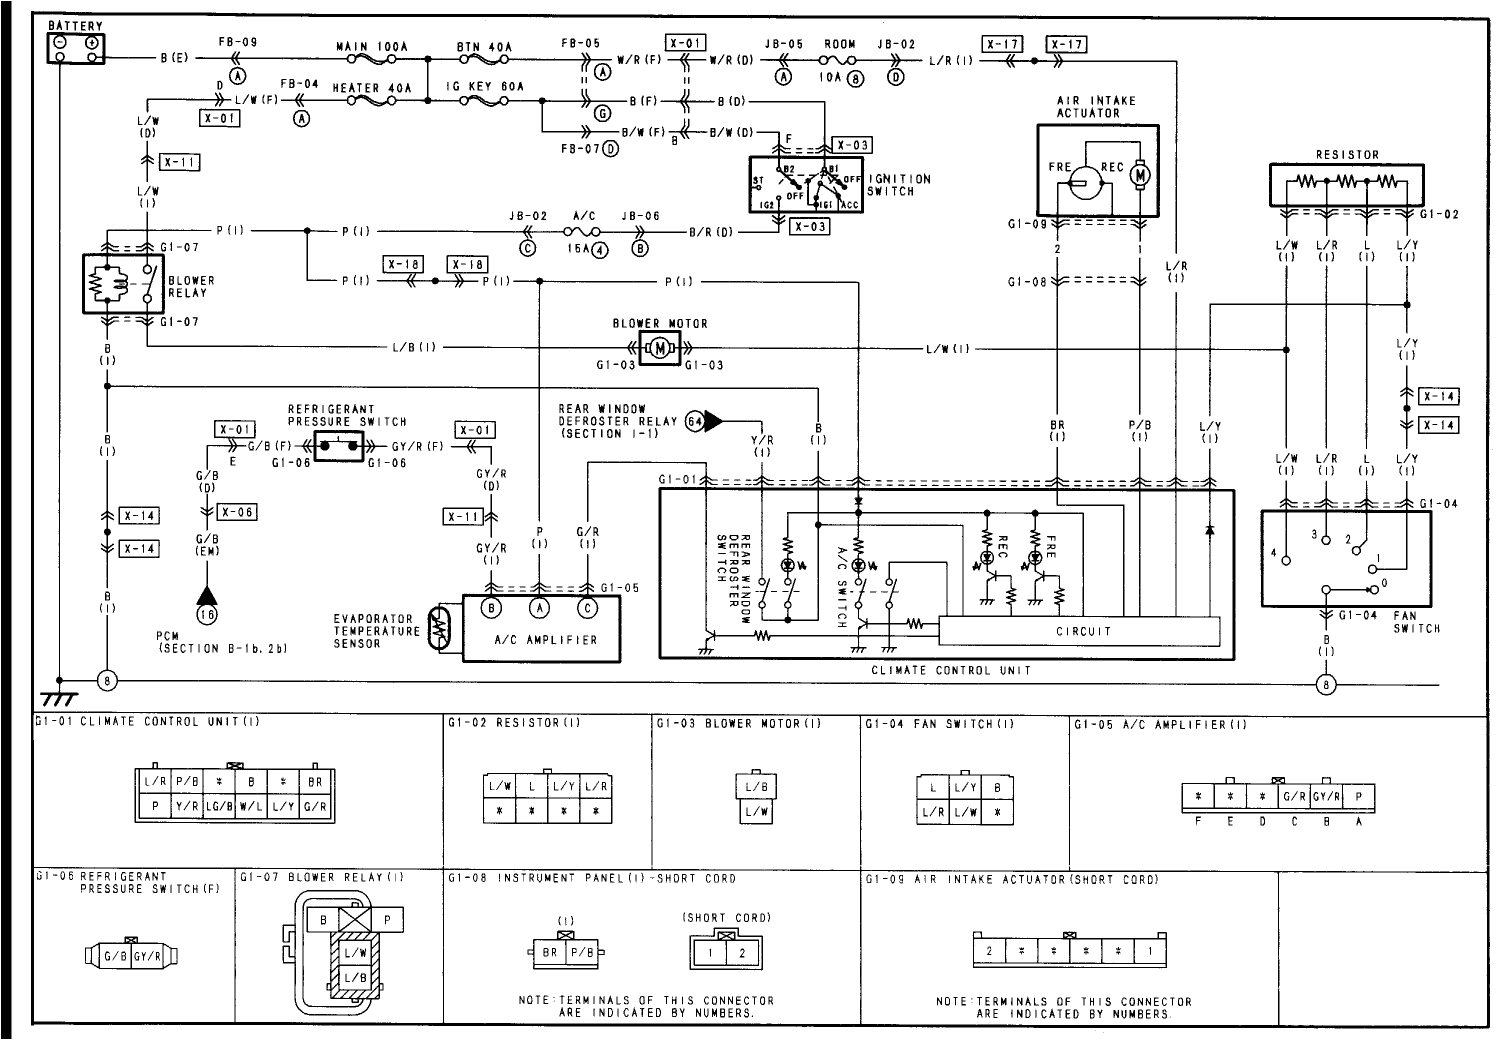 [SCHEMATICS_4FR]  2002 Mazda Alternator Wiring. 2003 mazda protege5 wiring diagram  autocardesign. looking for a charging system wiring diagrams for a 2002. fd alternator  wiring mazda rx7 forum. repair guides charging system alternator autozone. | 2002 Mazda Alternator Wiring |  | 2002-acura-tl-radio.info